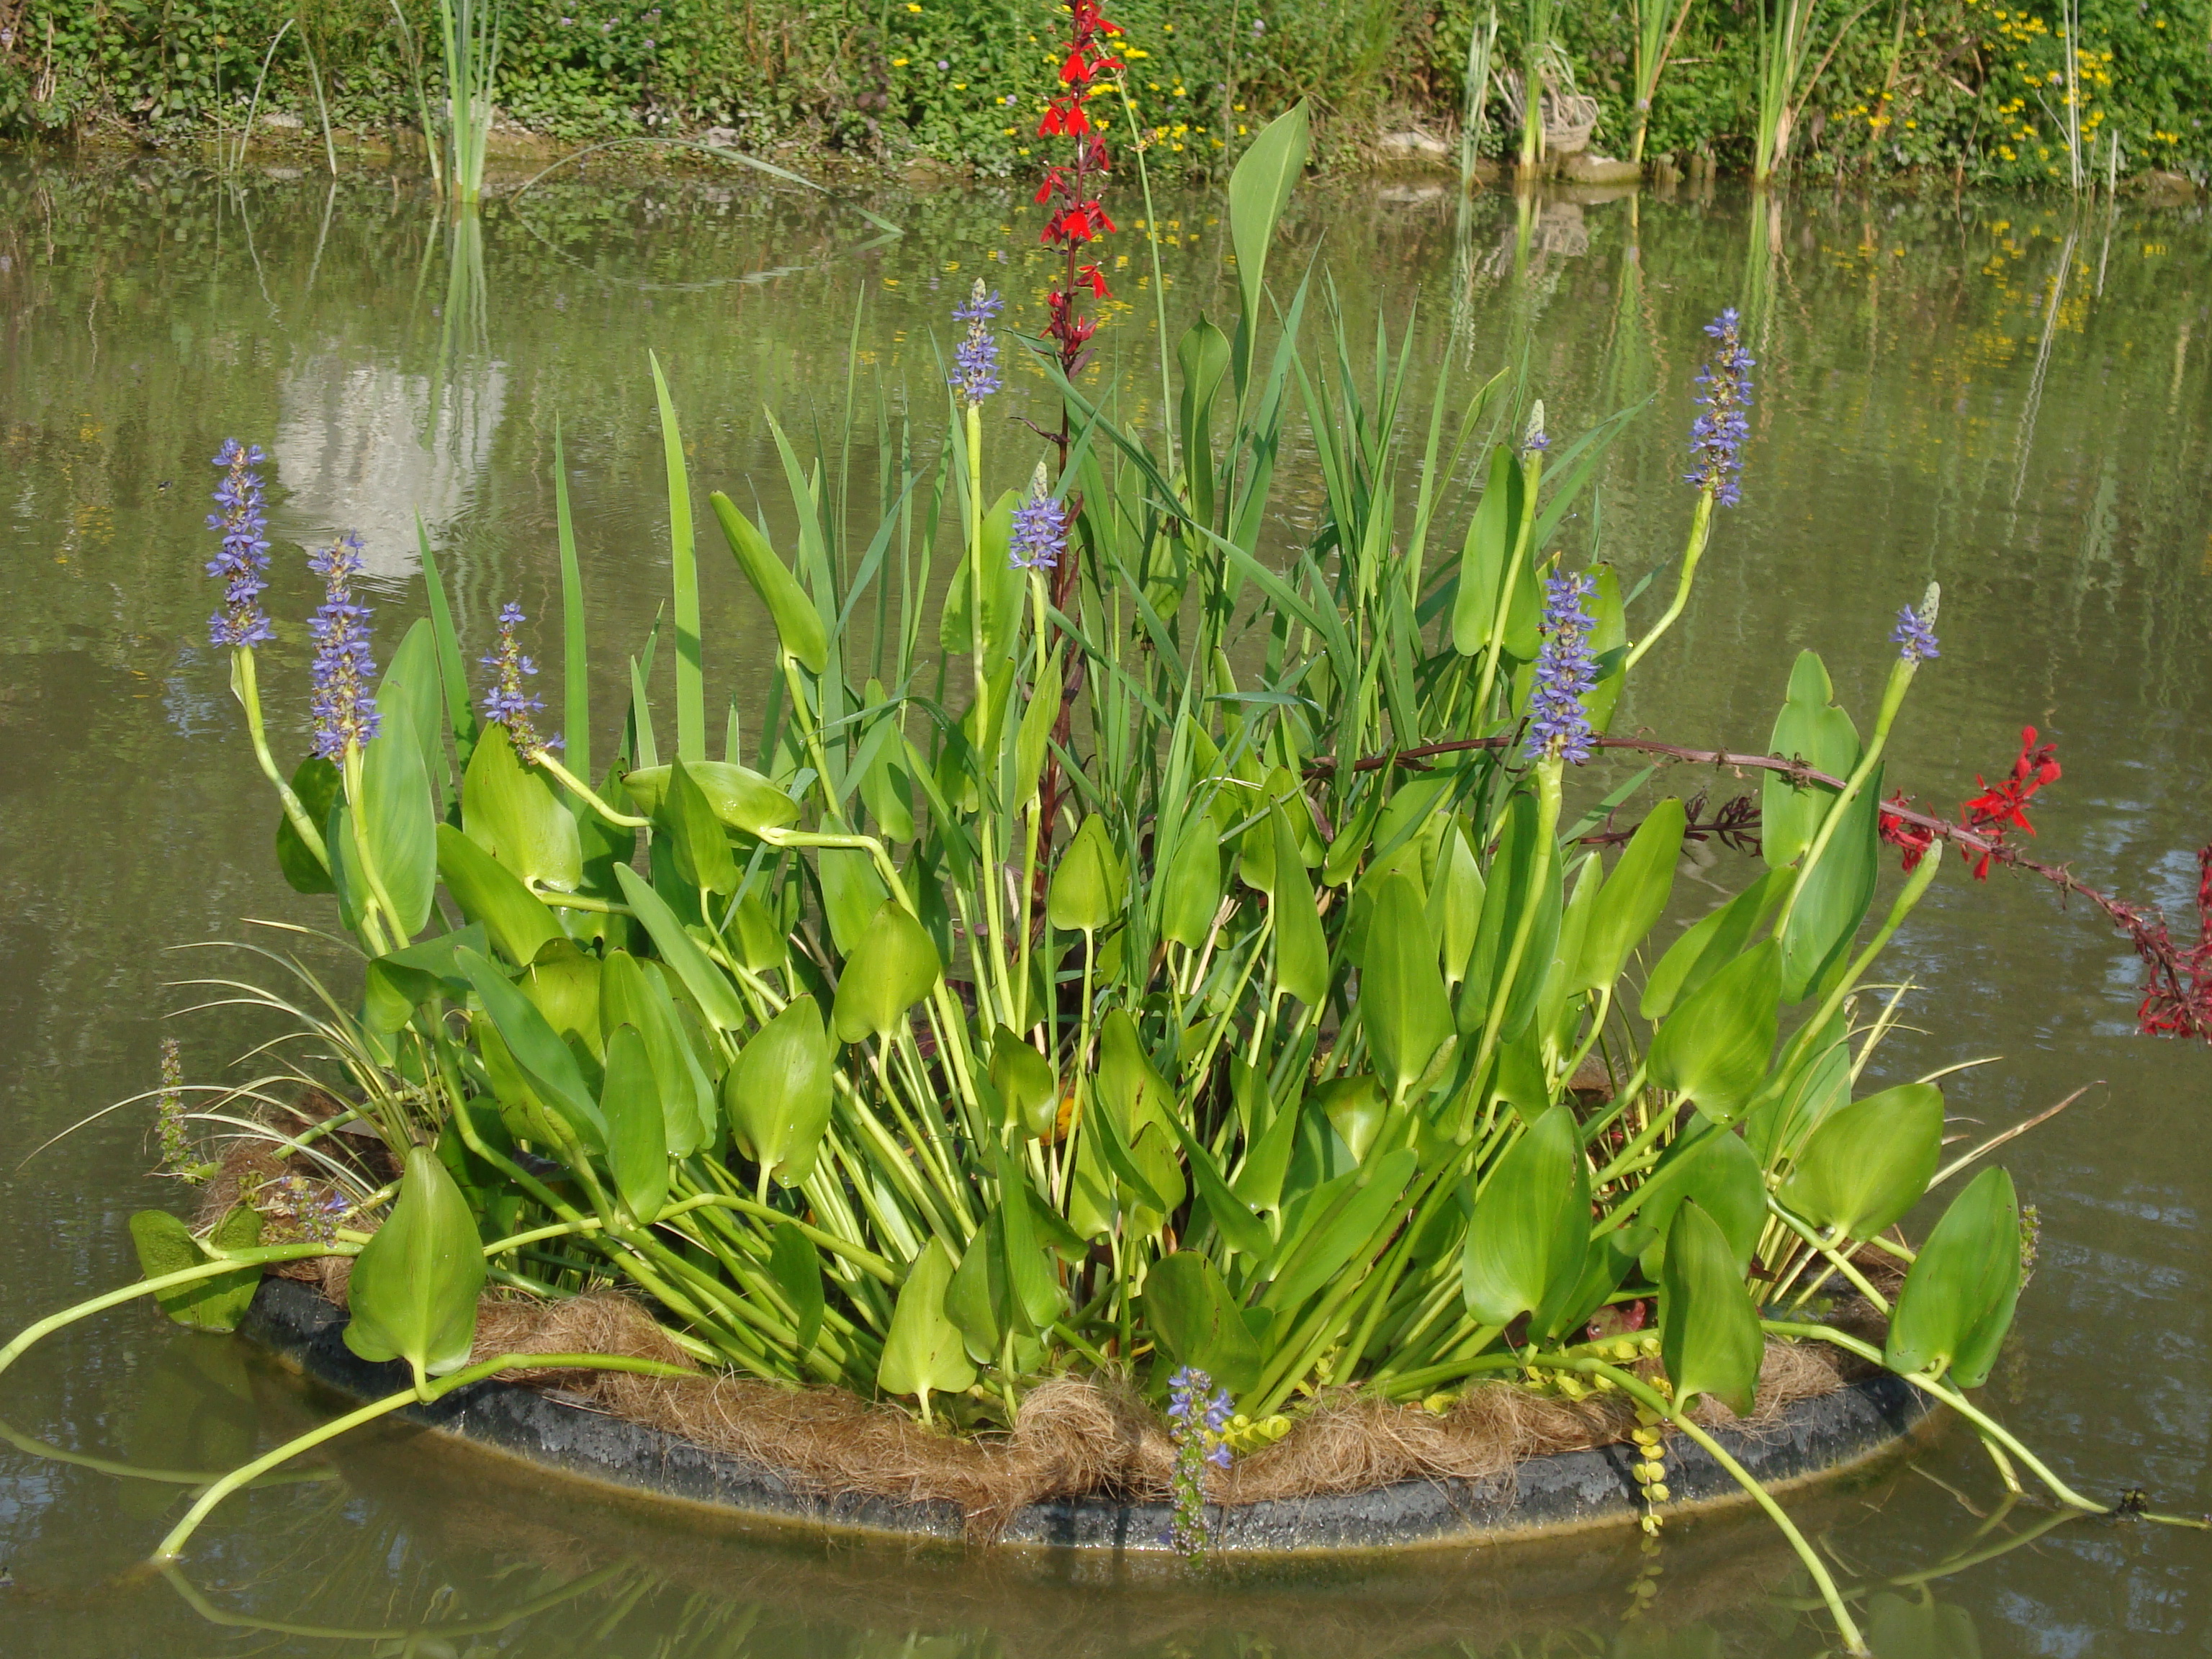 Water plant pickerel rush are blue flowering aquatic plants for ponds